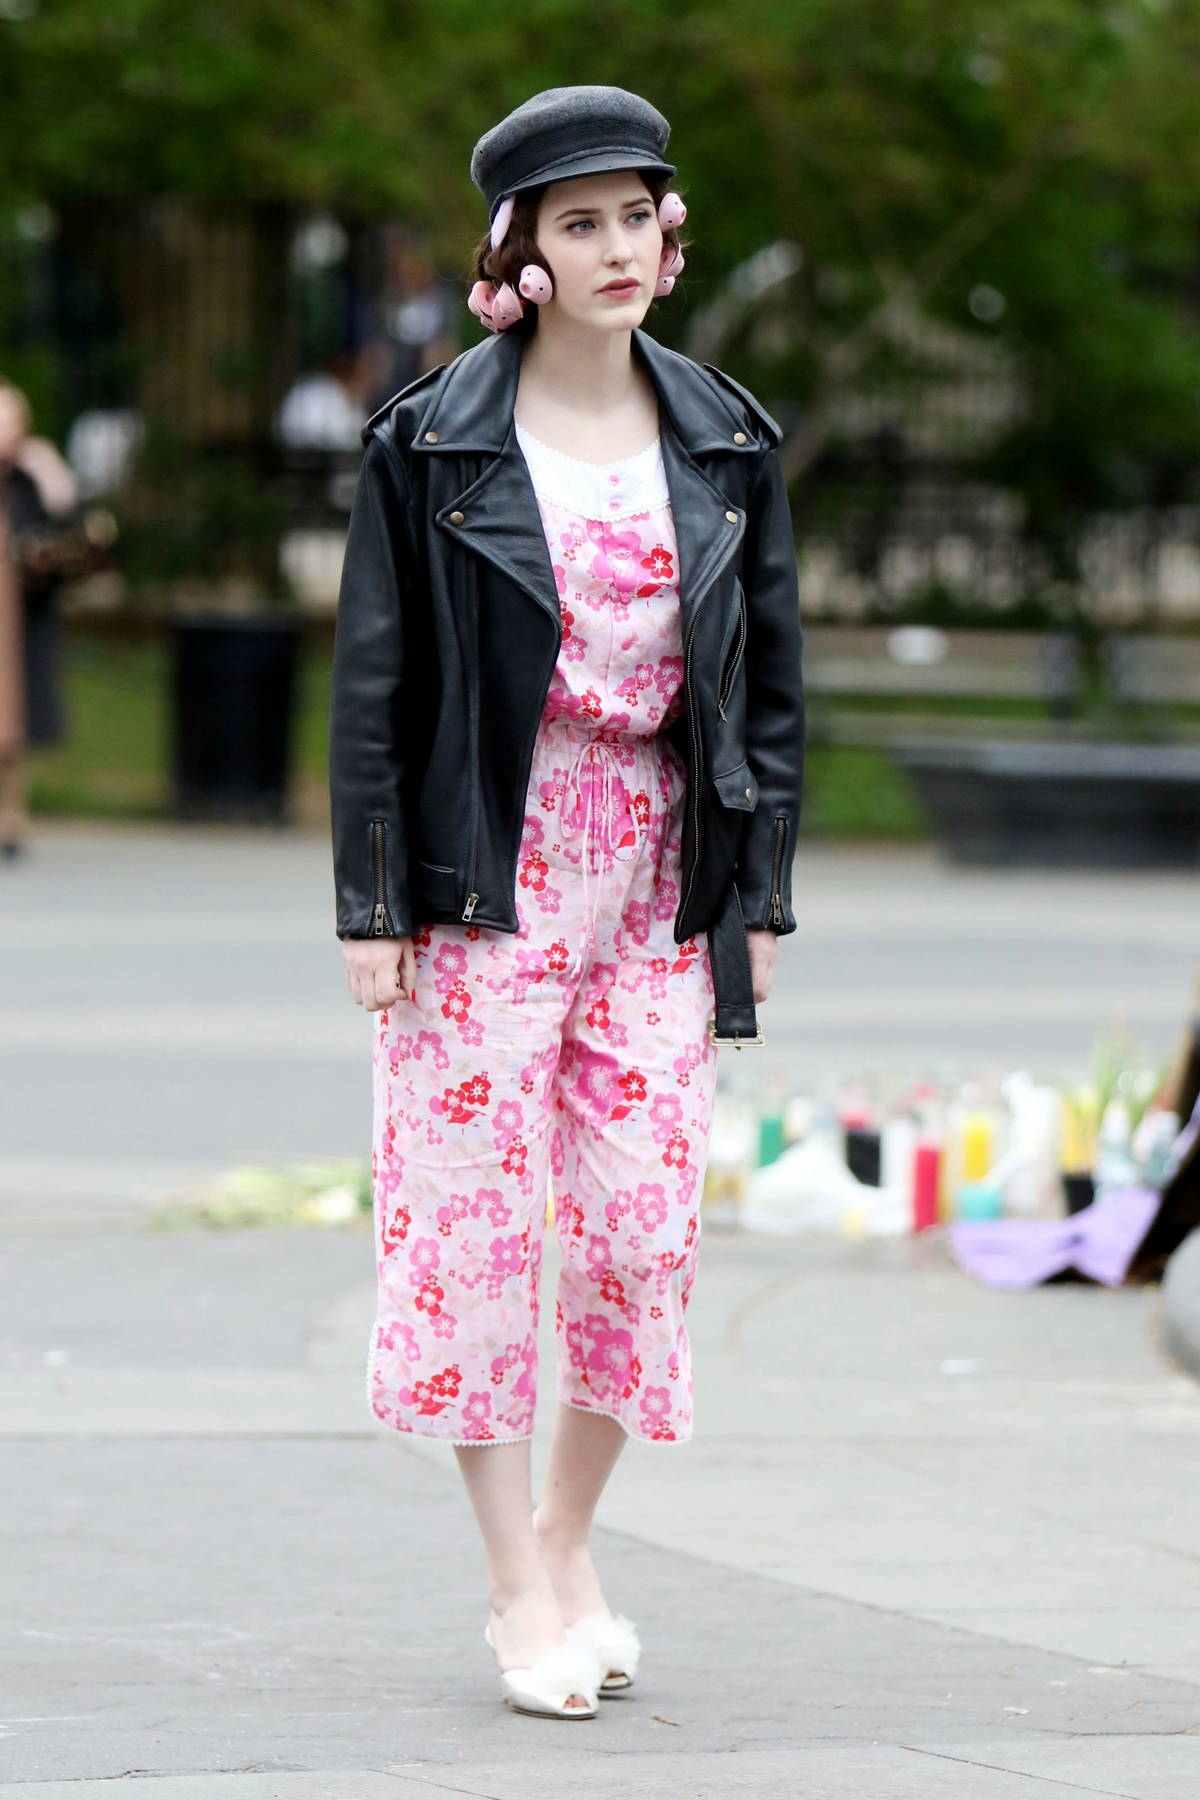 Rachel Brosnahan looks pretty in pink while on the set of the Marvelous Mrs. Maisel at Washington Square Park in New York City